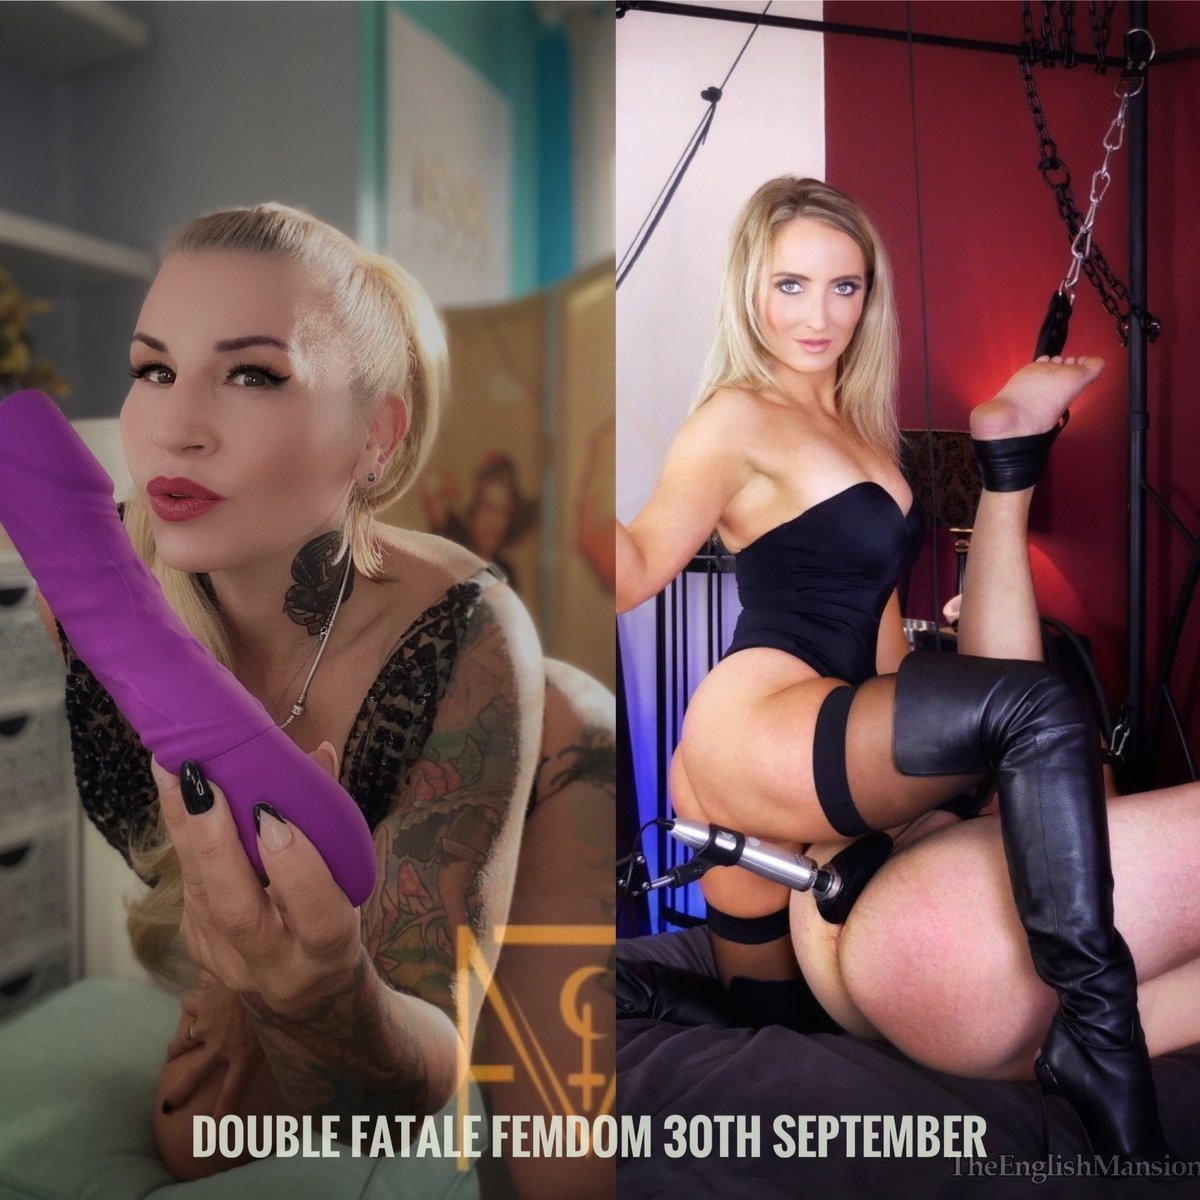 The ultimate #WetWednesday Wednesday 30th September #DoubleDomination sessions with Myself and @MissCourtneyM limited appointment availability so book now https://t.co/SwDi2QyZOw serious applications only https://t.co/OiOlLjaa47